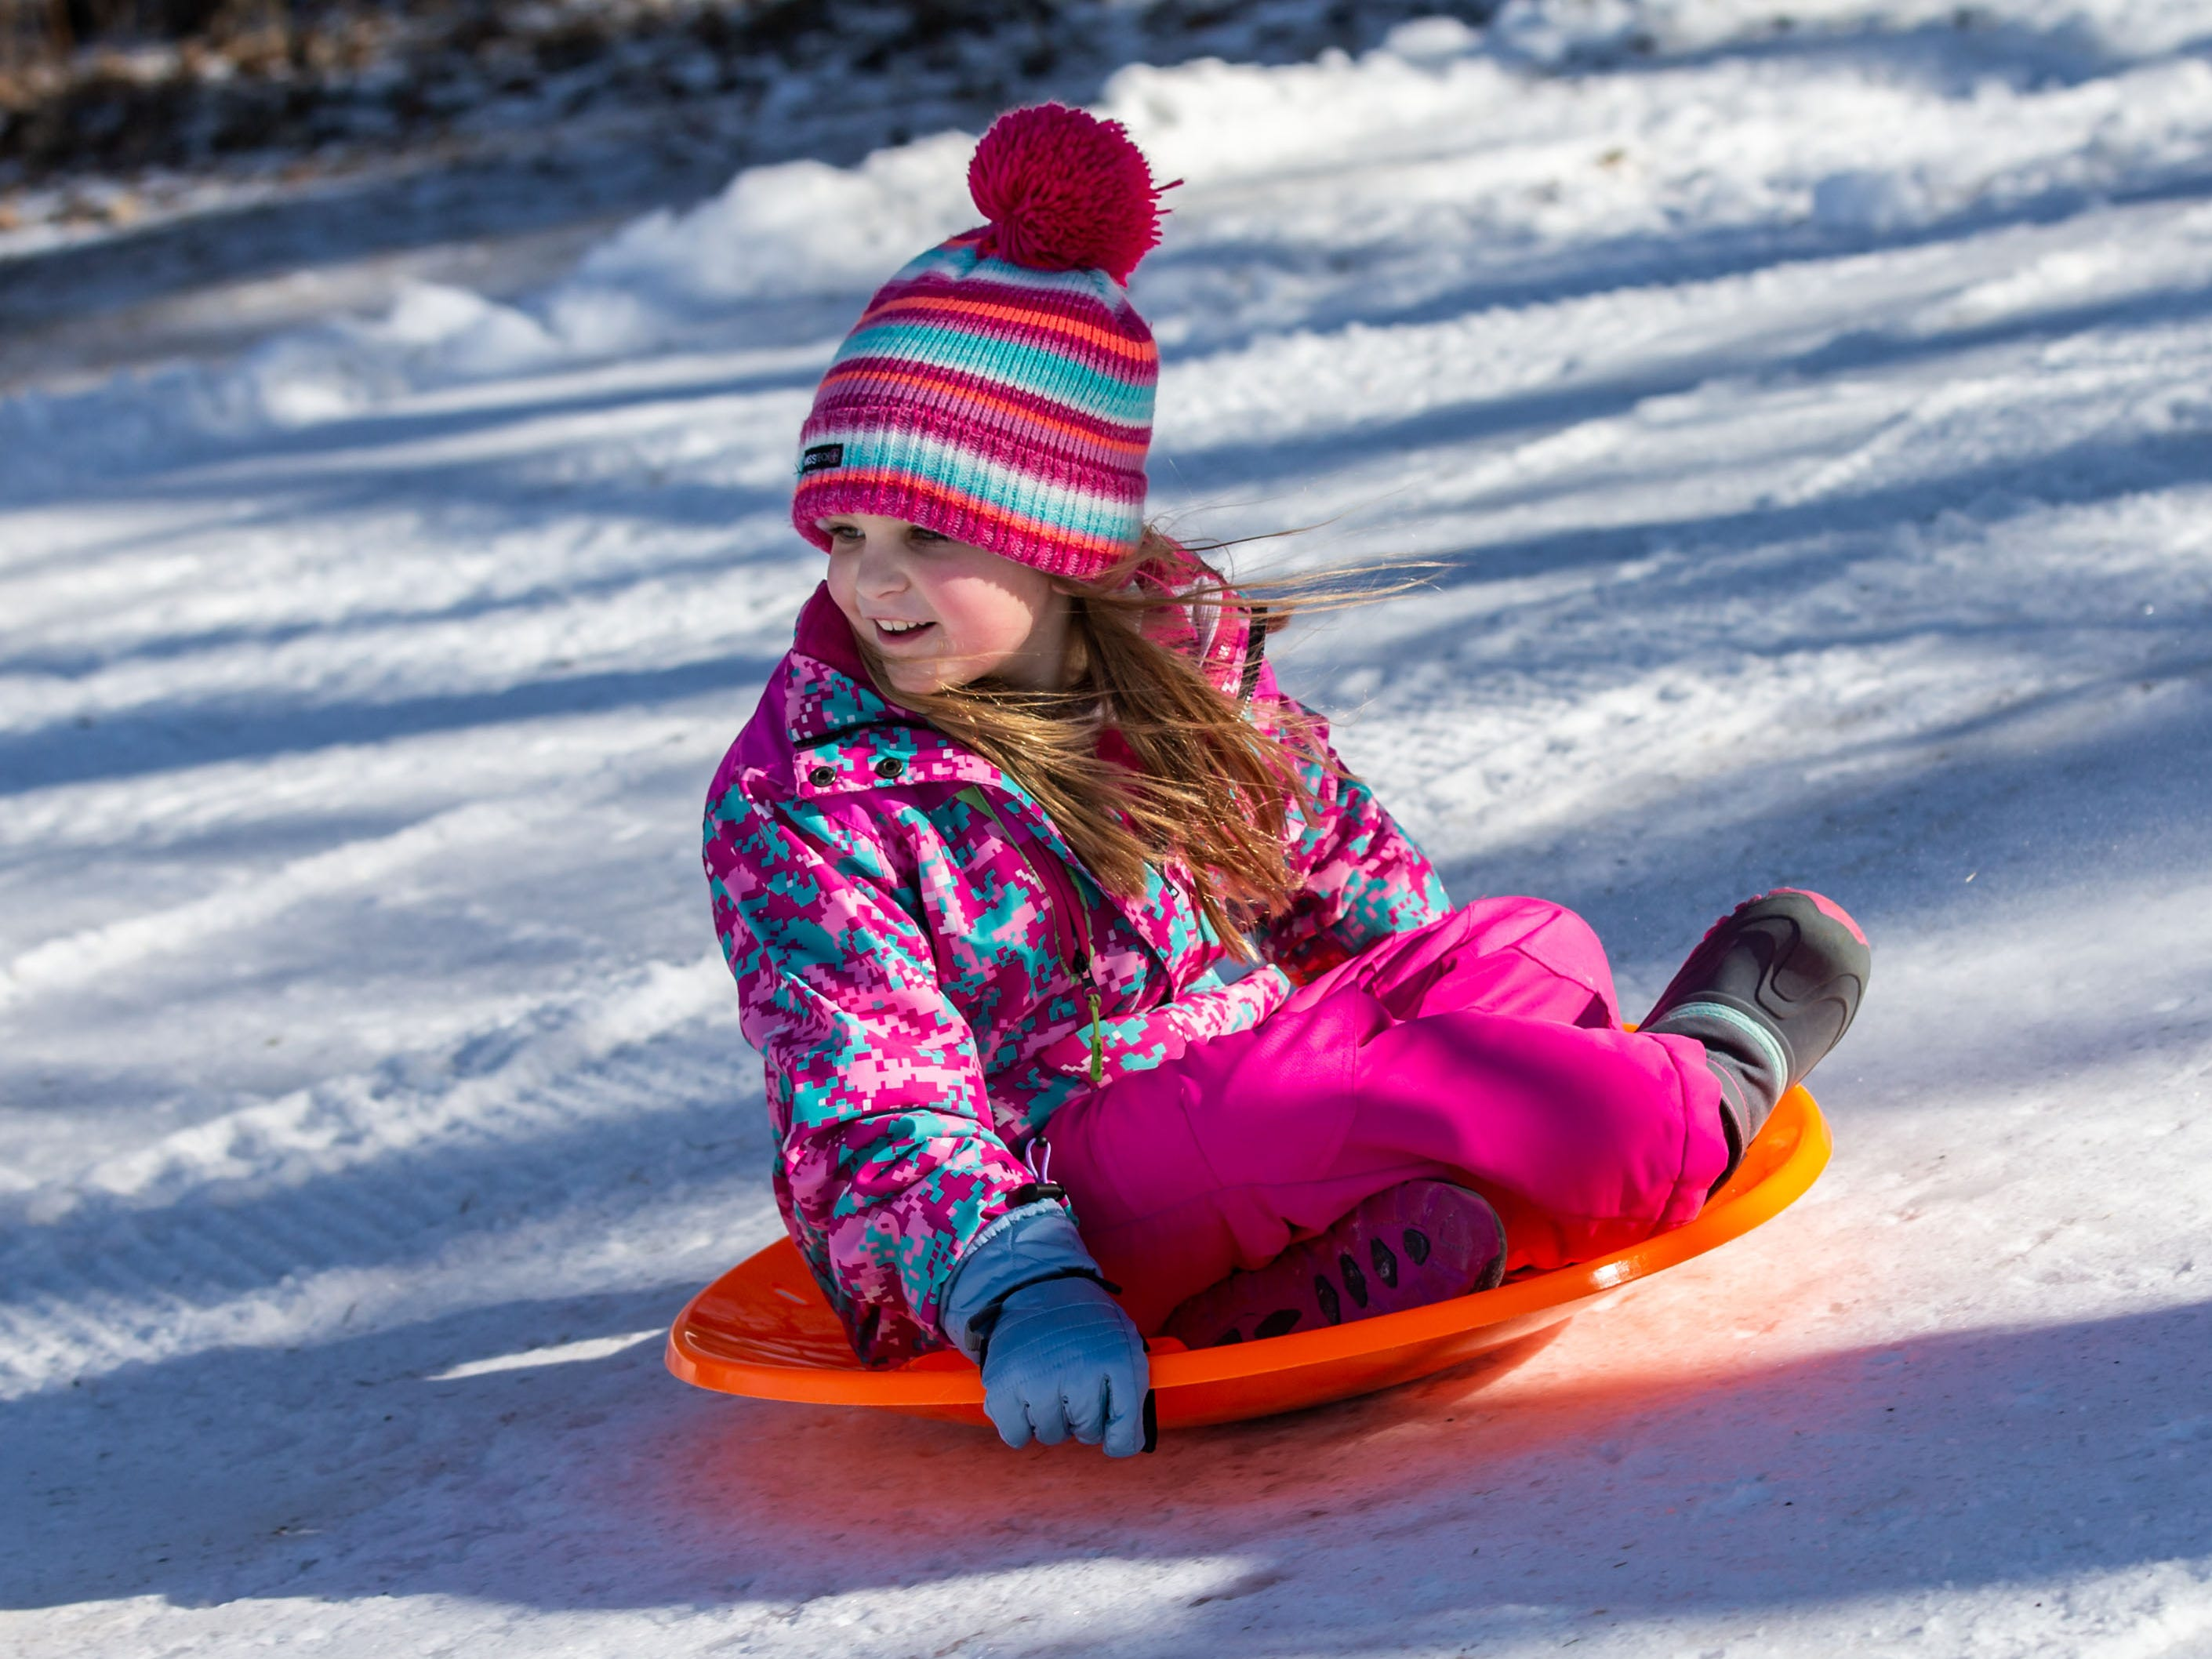 Samantha Gehrke, 8, of Oconomowoc speeds down the sledding hill during the annual Winterfest at Lisbon Community Park on Saturday, Feb. 9, 2019. The free event includes ice skating, sledding, skiing, a bonfire, a warming tent with free refreshments, hot dogs and s'mores.